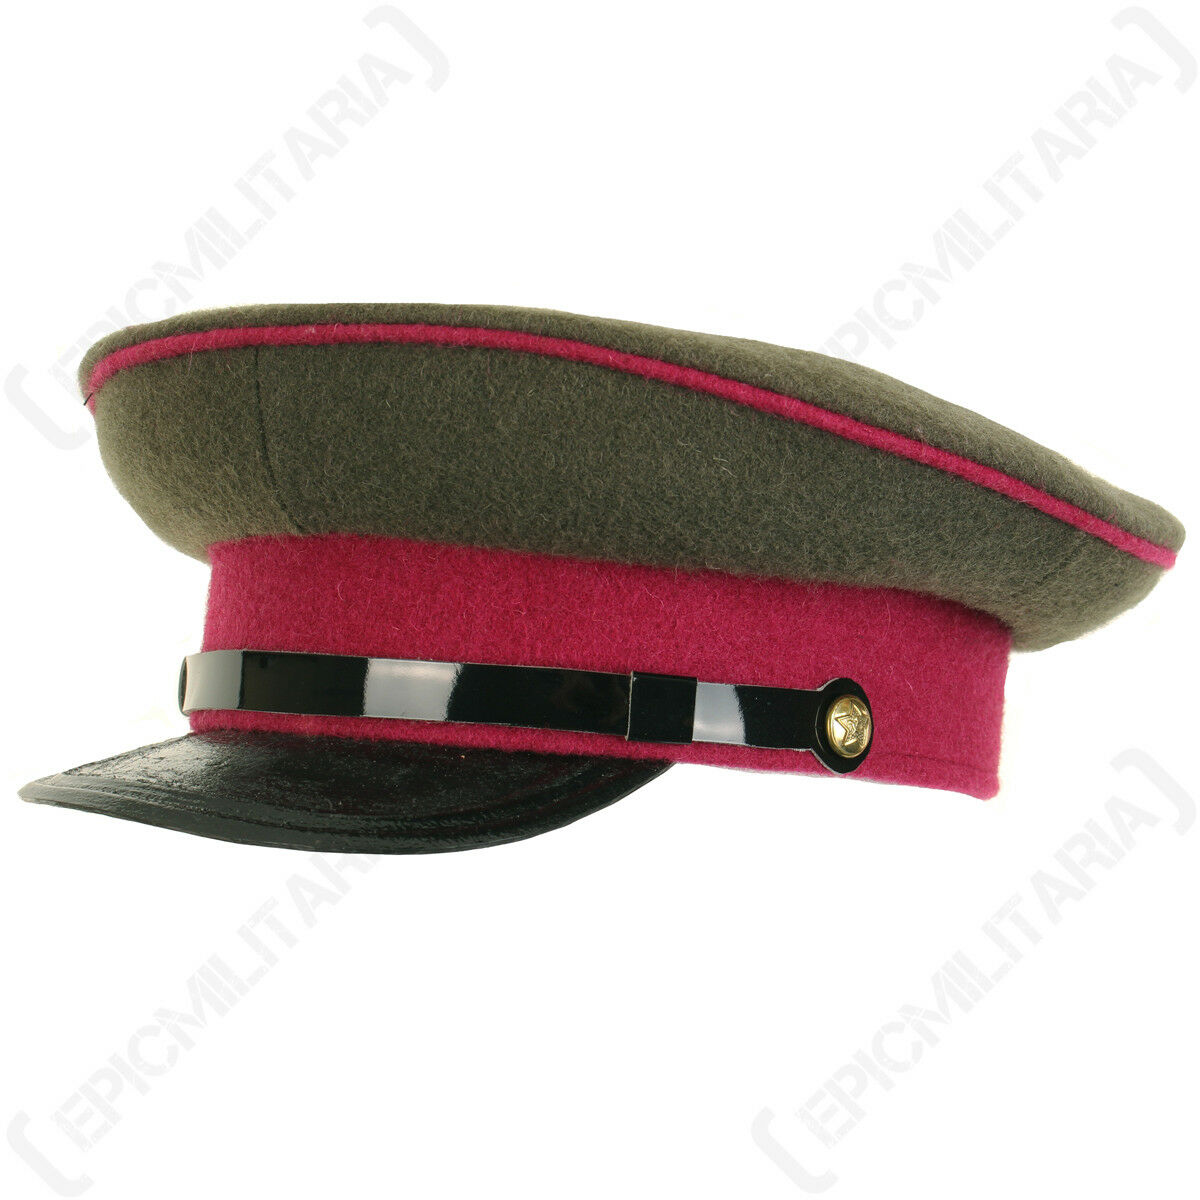 WW2 Russian M36 Visor Cap Infantry - Peaked Red Army Soviet Uniform Military New